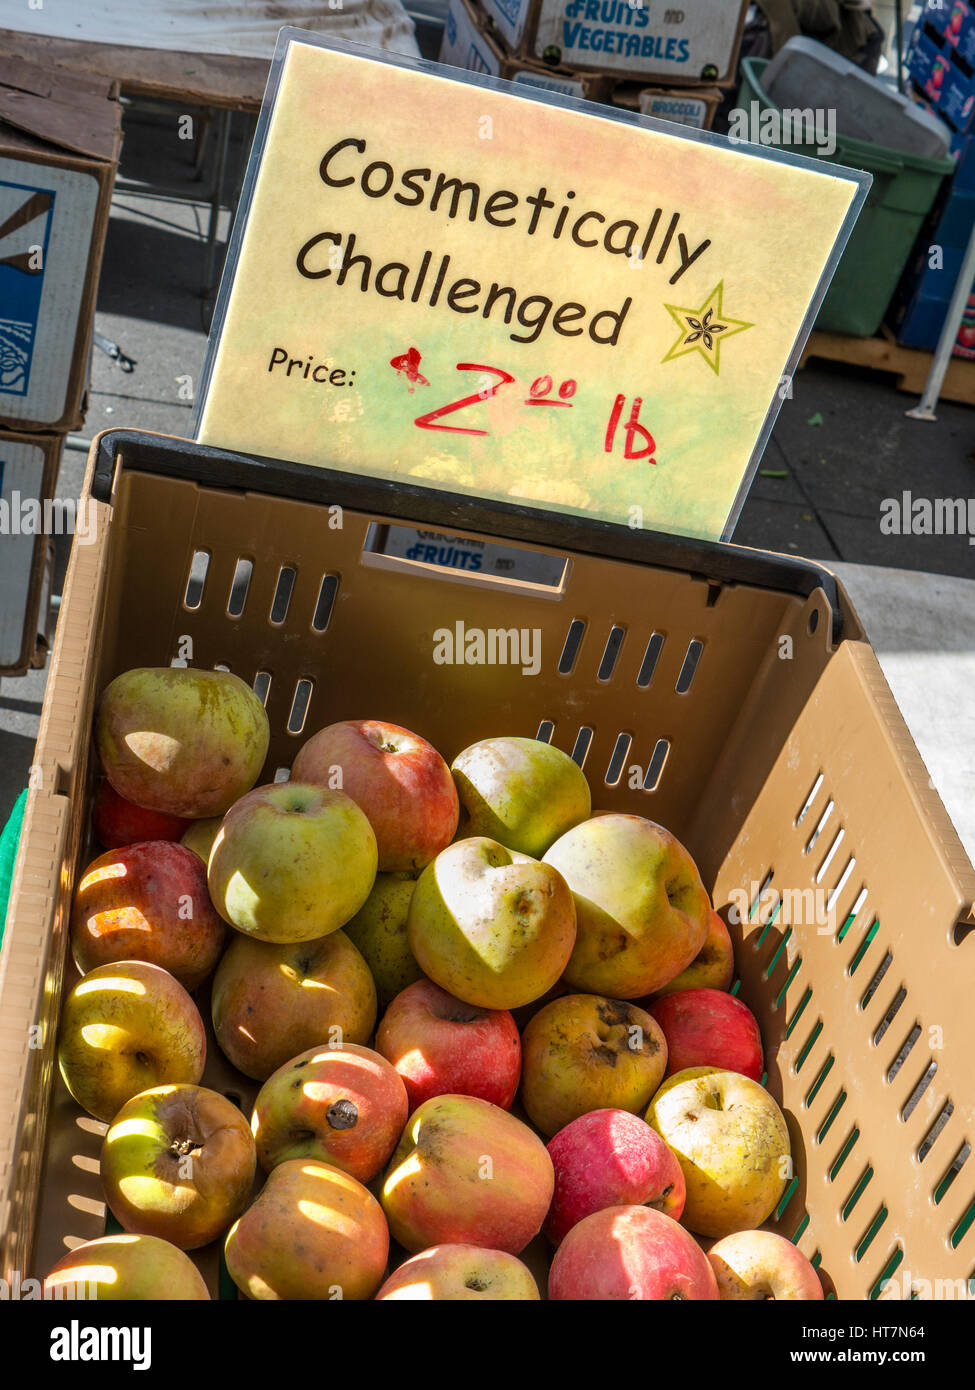 Cosmetically challenged apples on sale at Farmers Market Embarcadero San Francisco California USA - Stock Image